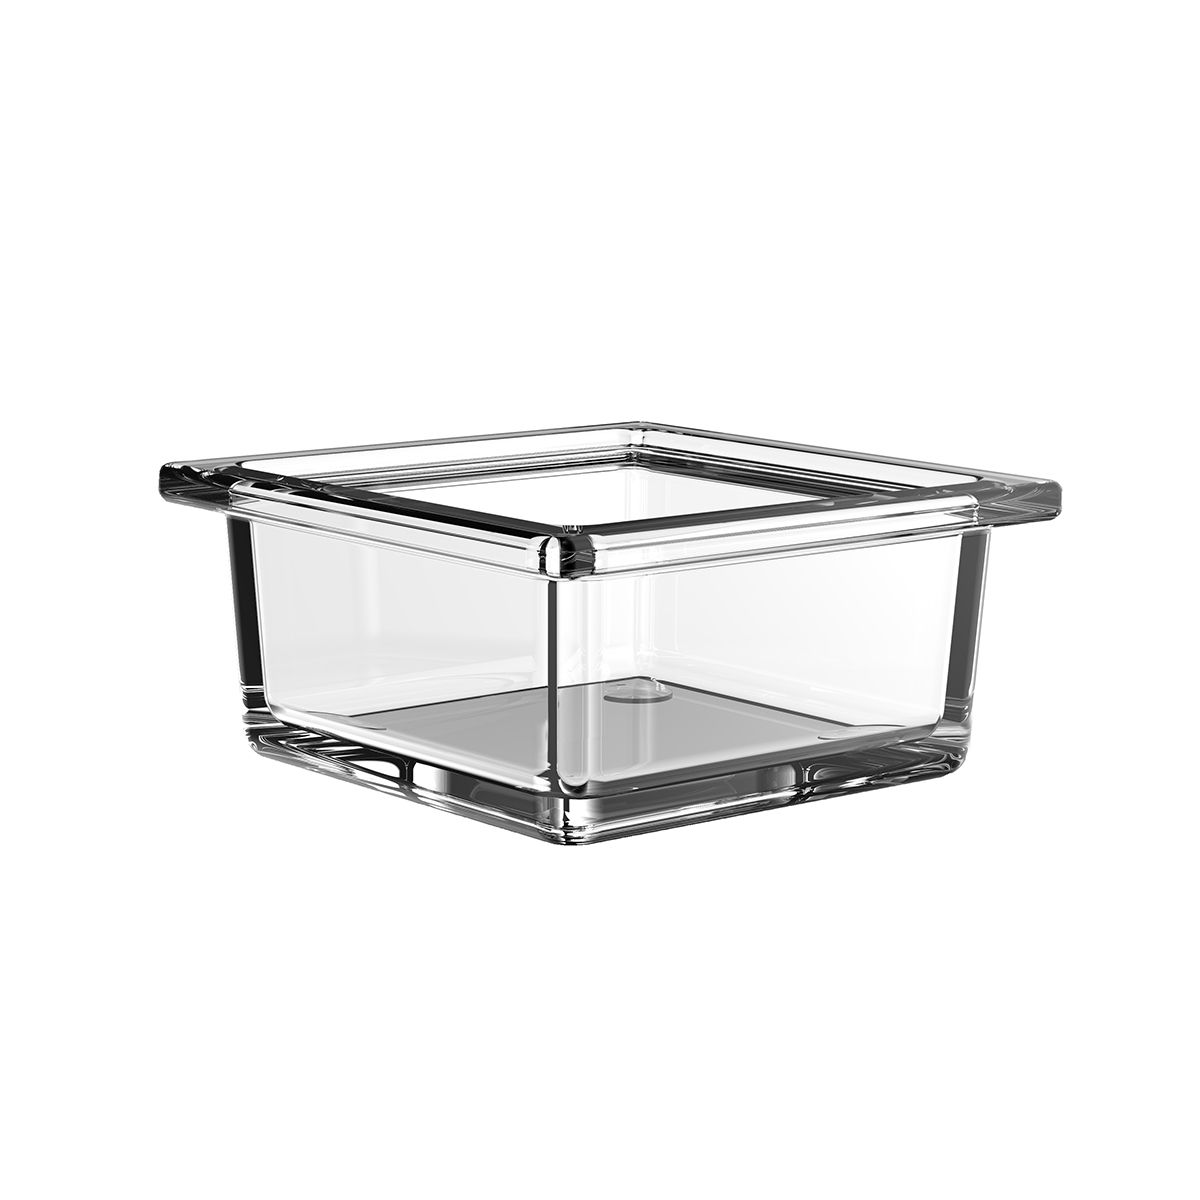 Liaison 1866 000 00 Free Standing Soap Dish In Clear Crystal Glass Modo Bath